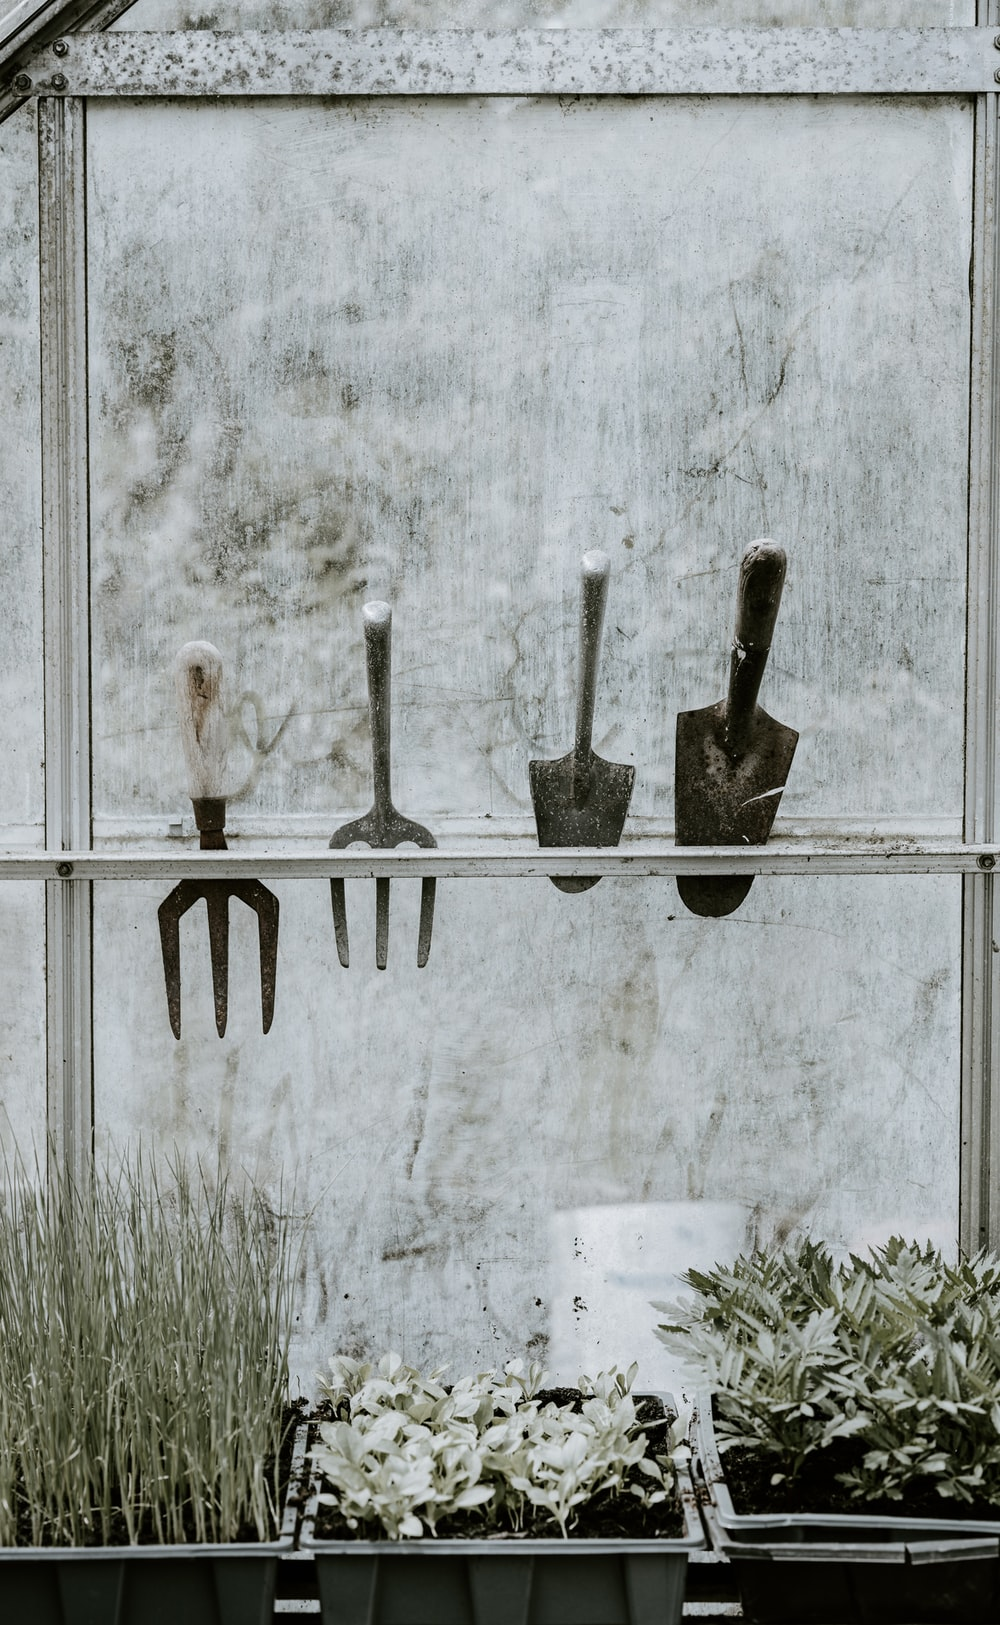 four handheld gardening tools on rack